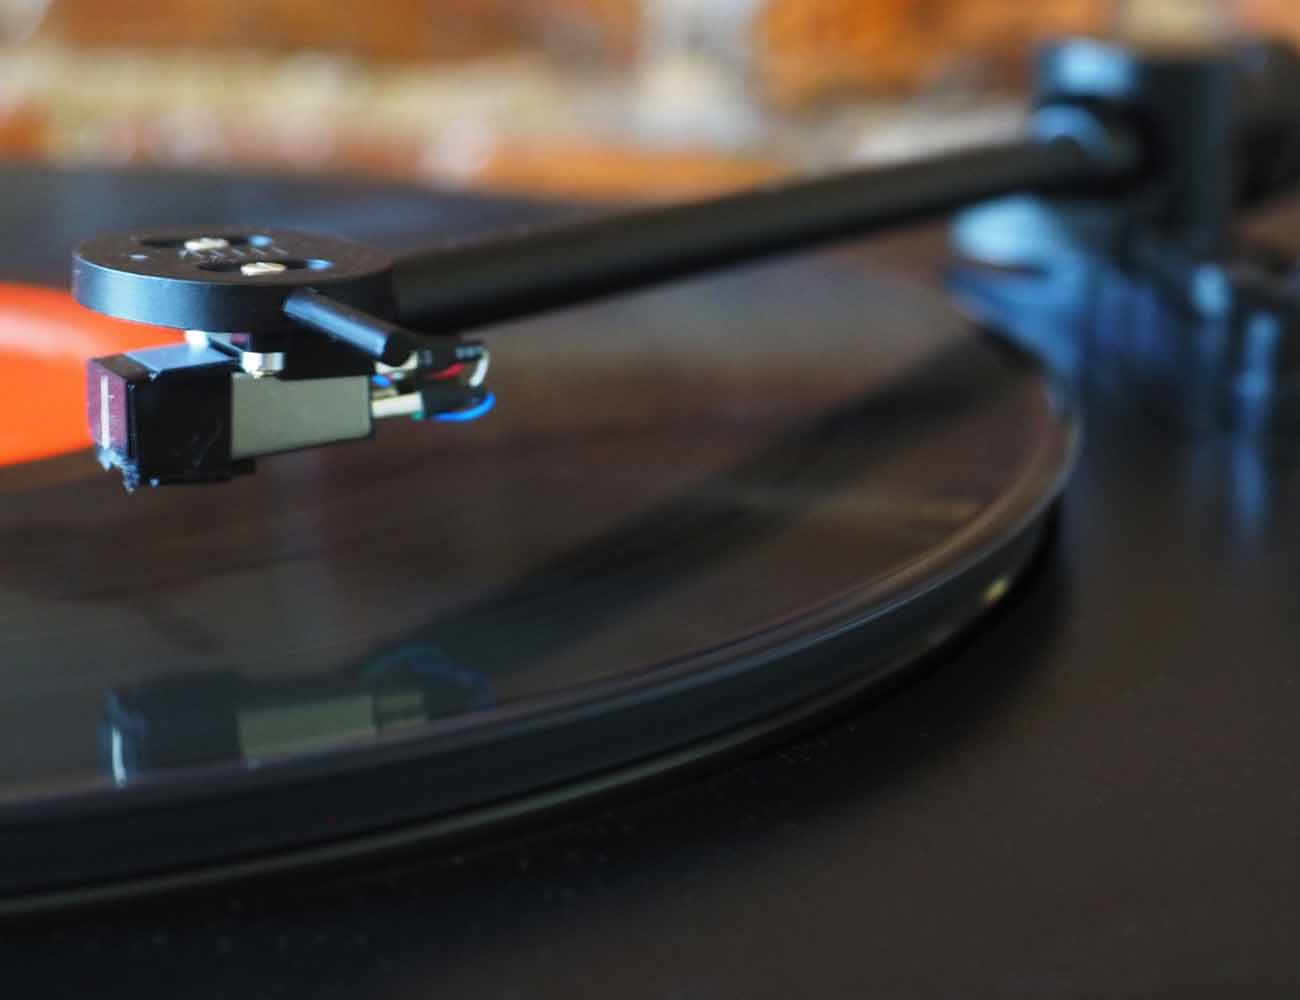 PS-HX500 Vinyl TurnTable From Sony